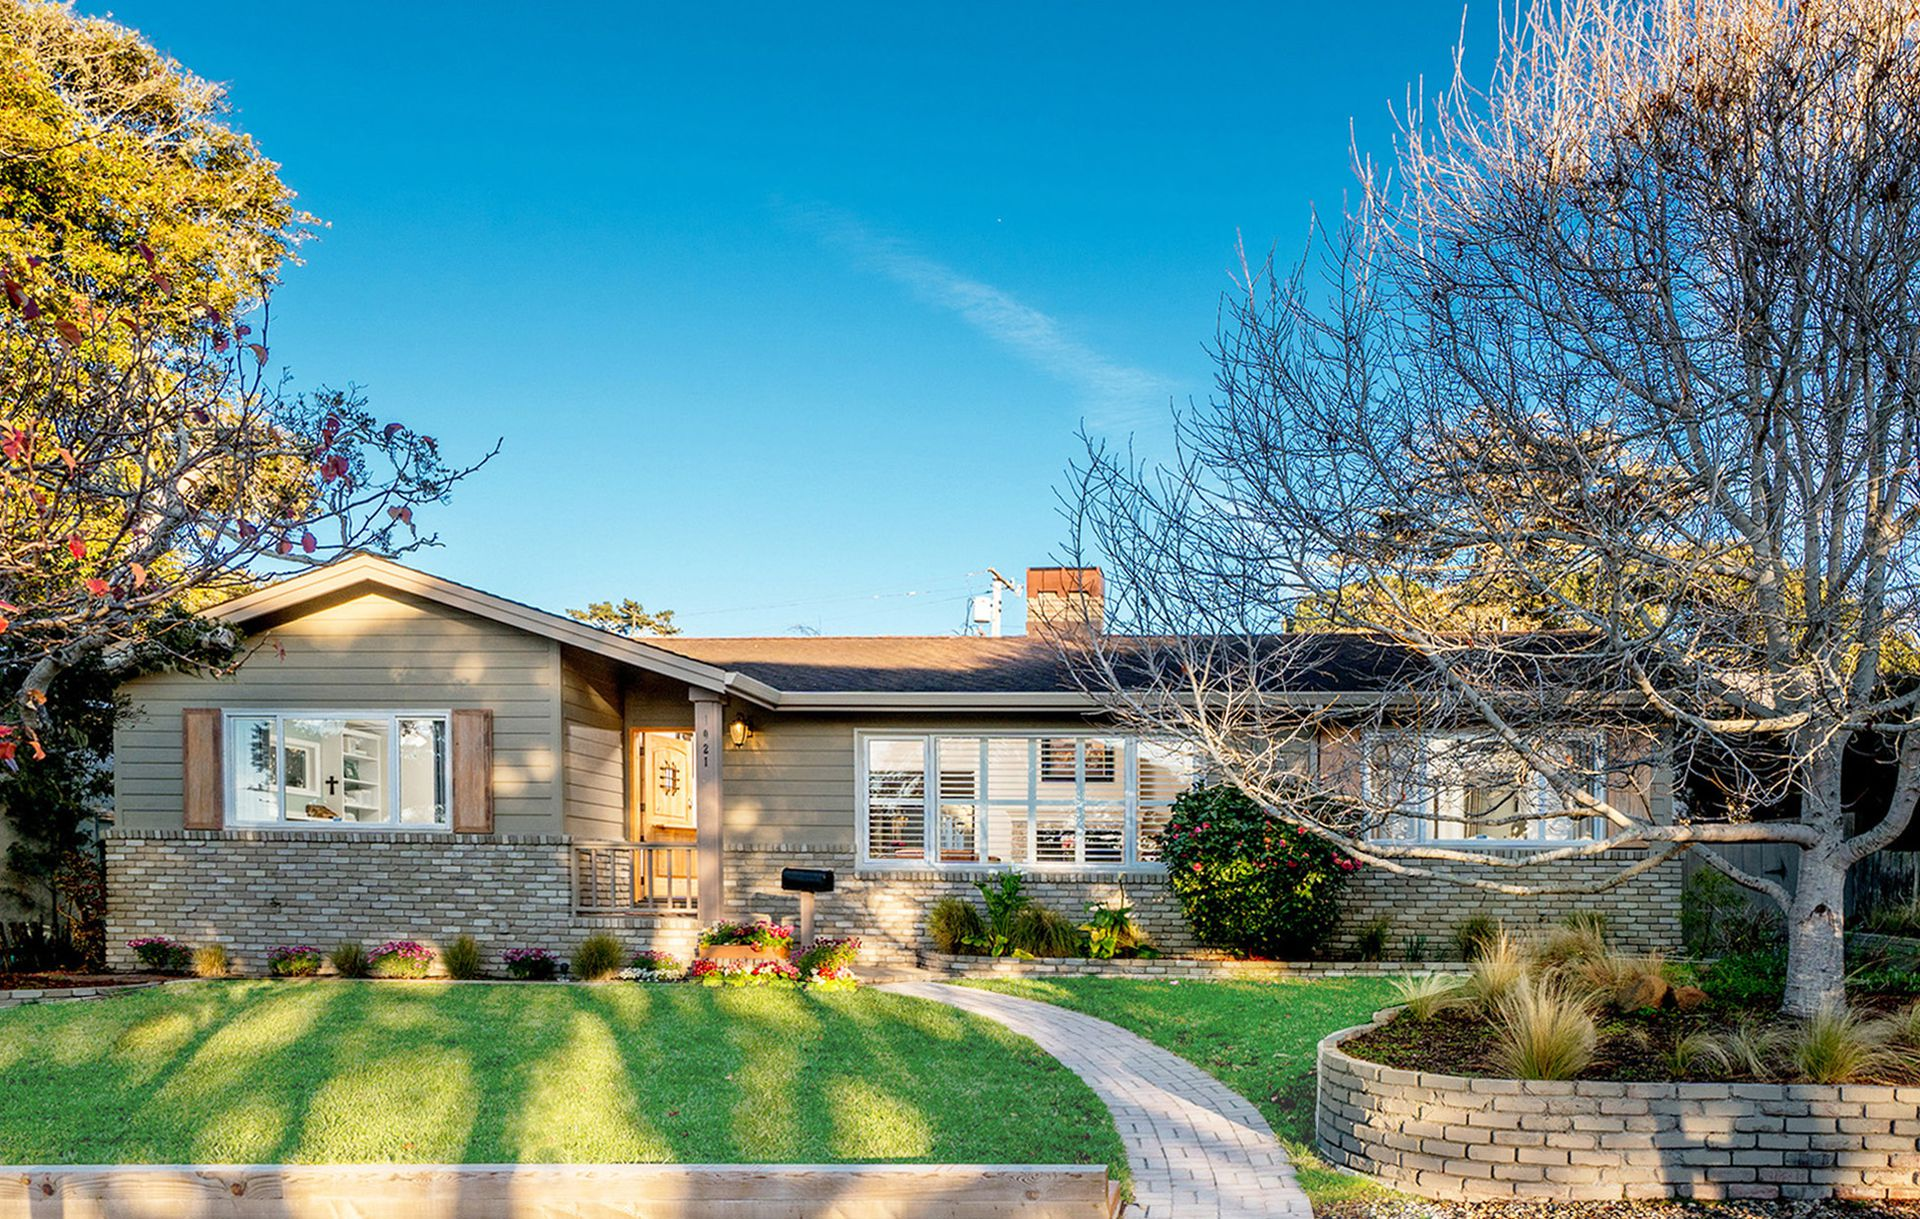 Property Listing: 1021 Olmsted Avenue, Pacific Grove - SOLD - List ...